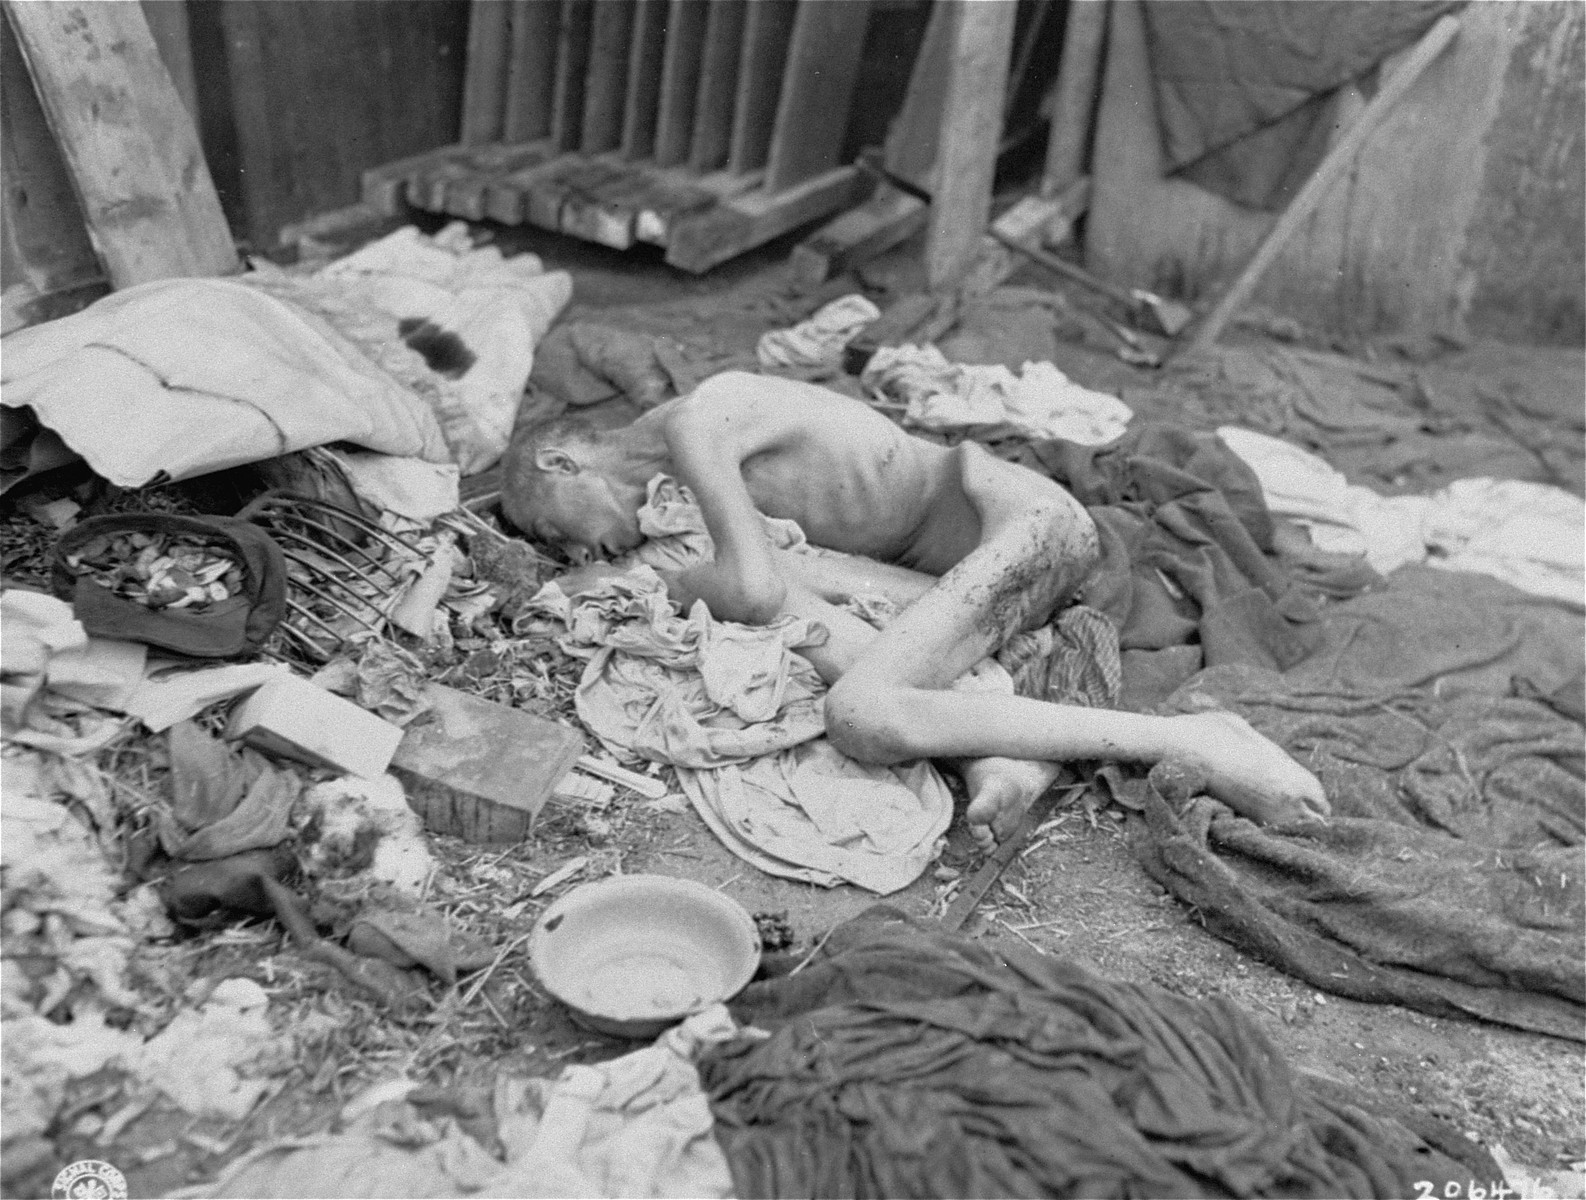 An emaciated survivor lies on the ground among blankets and bowls in the newly liberated Gusen concentration camp.